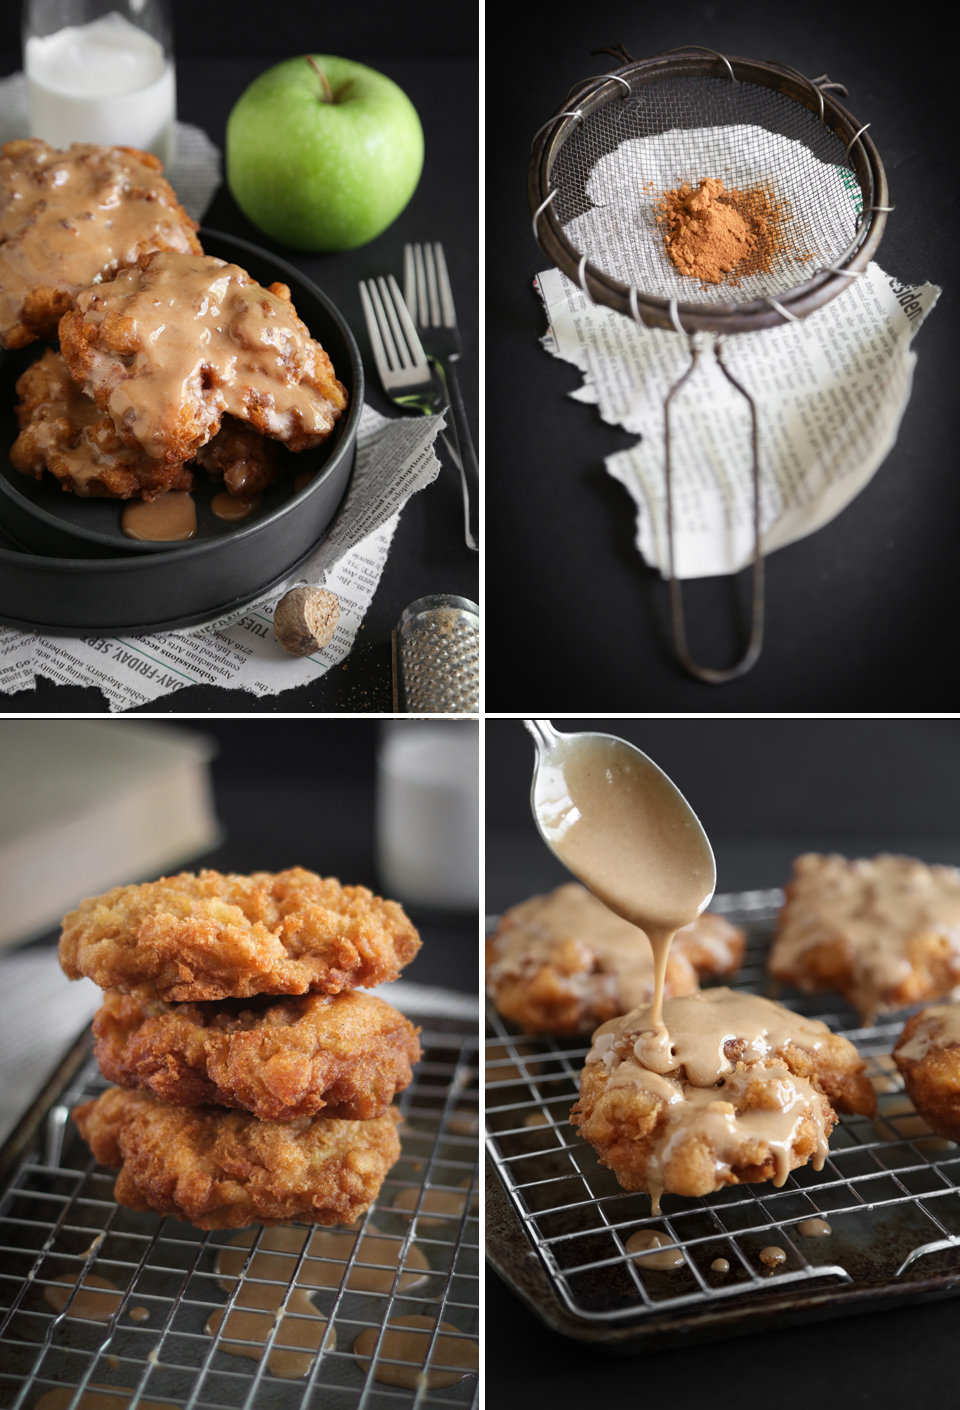 Homemade Ugly Apple Fritters